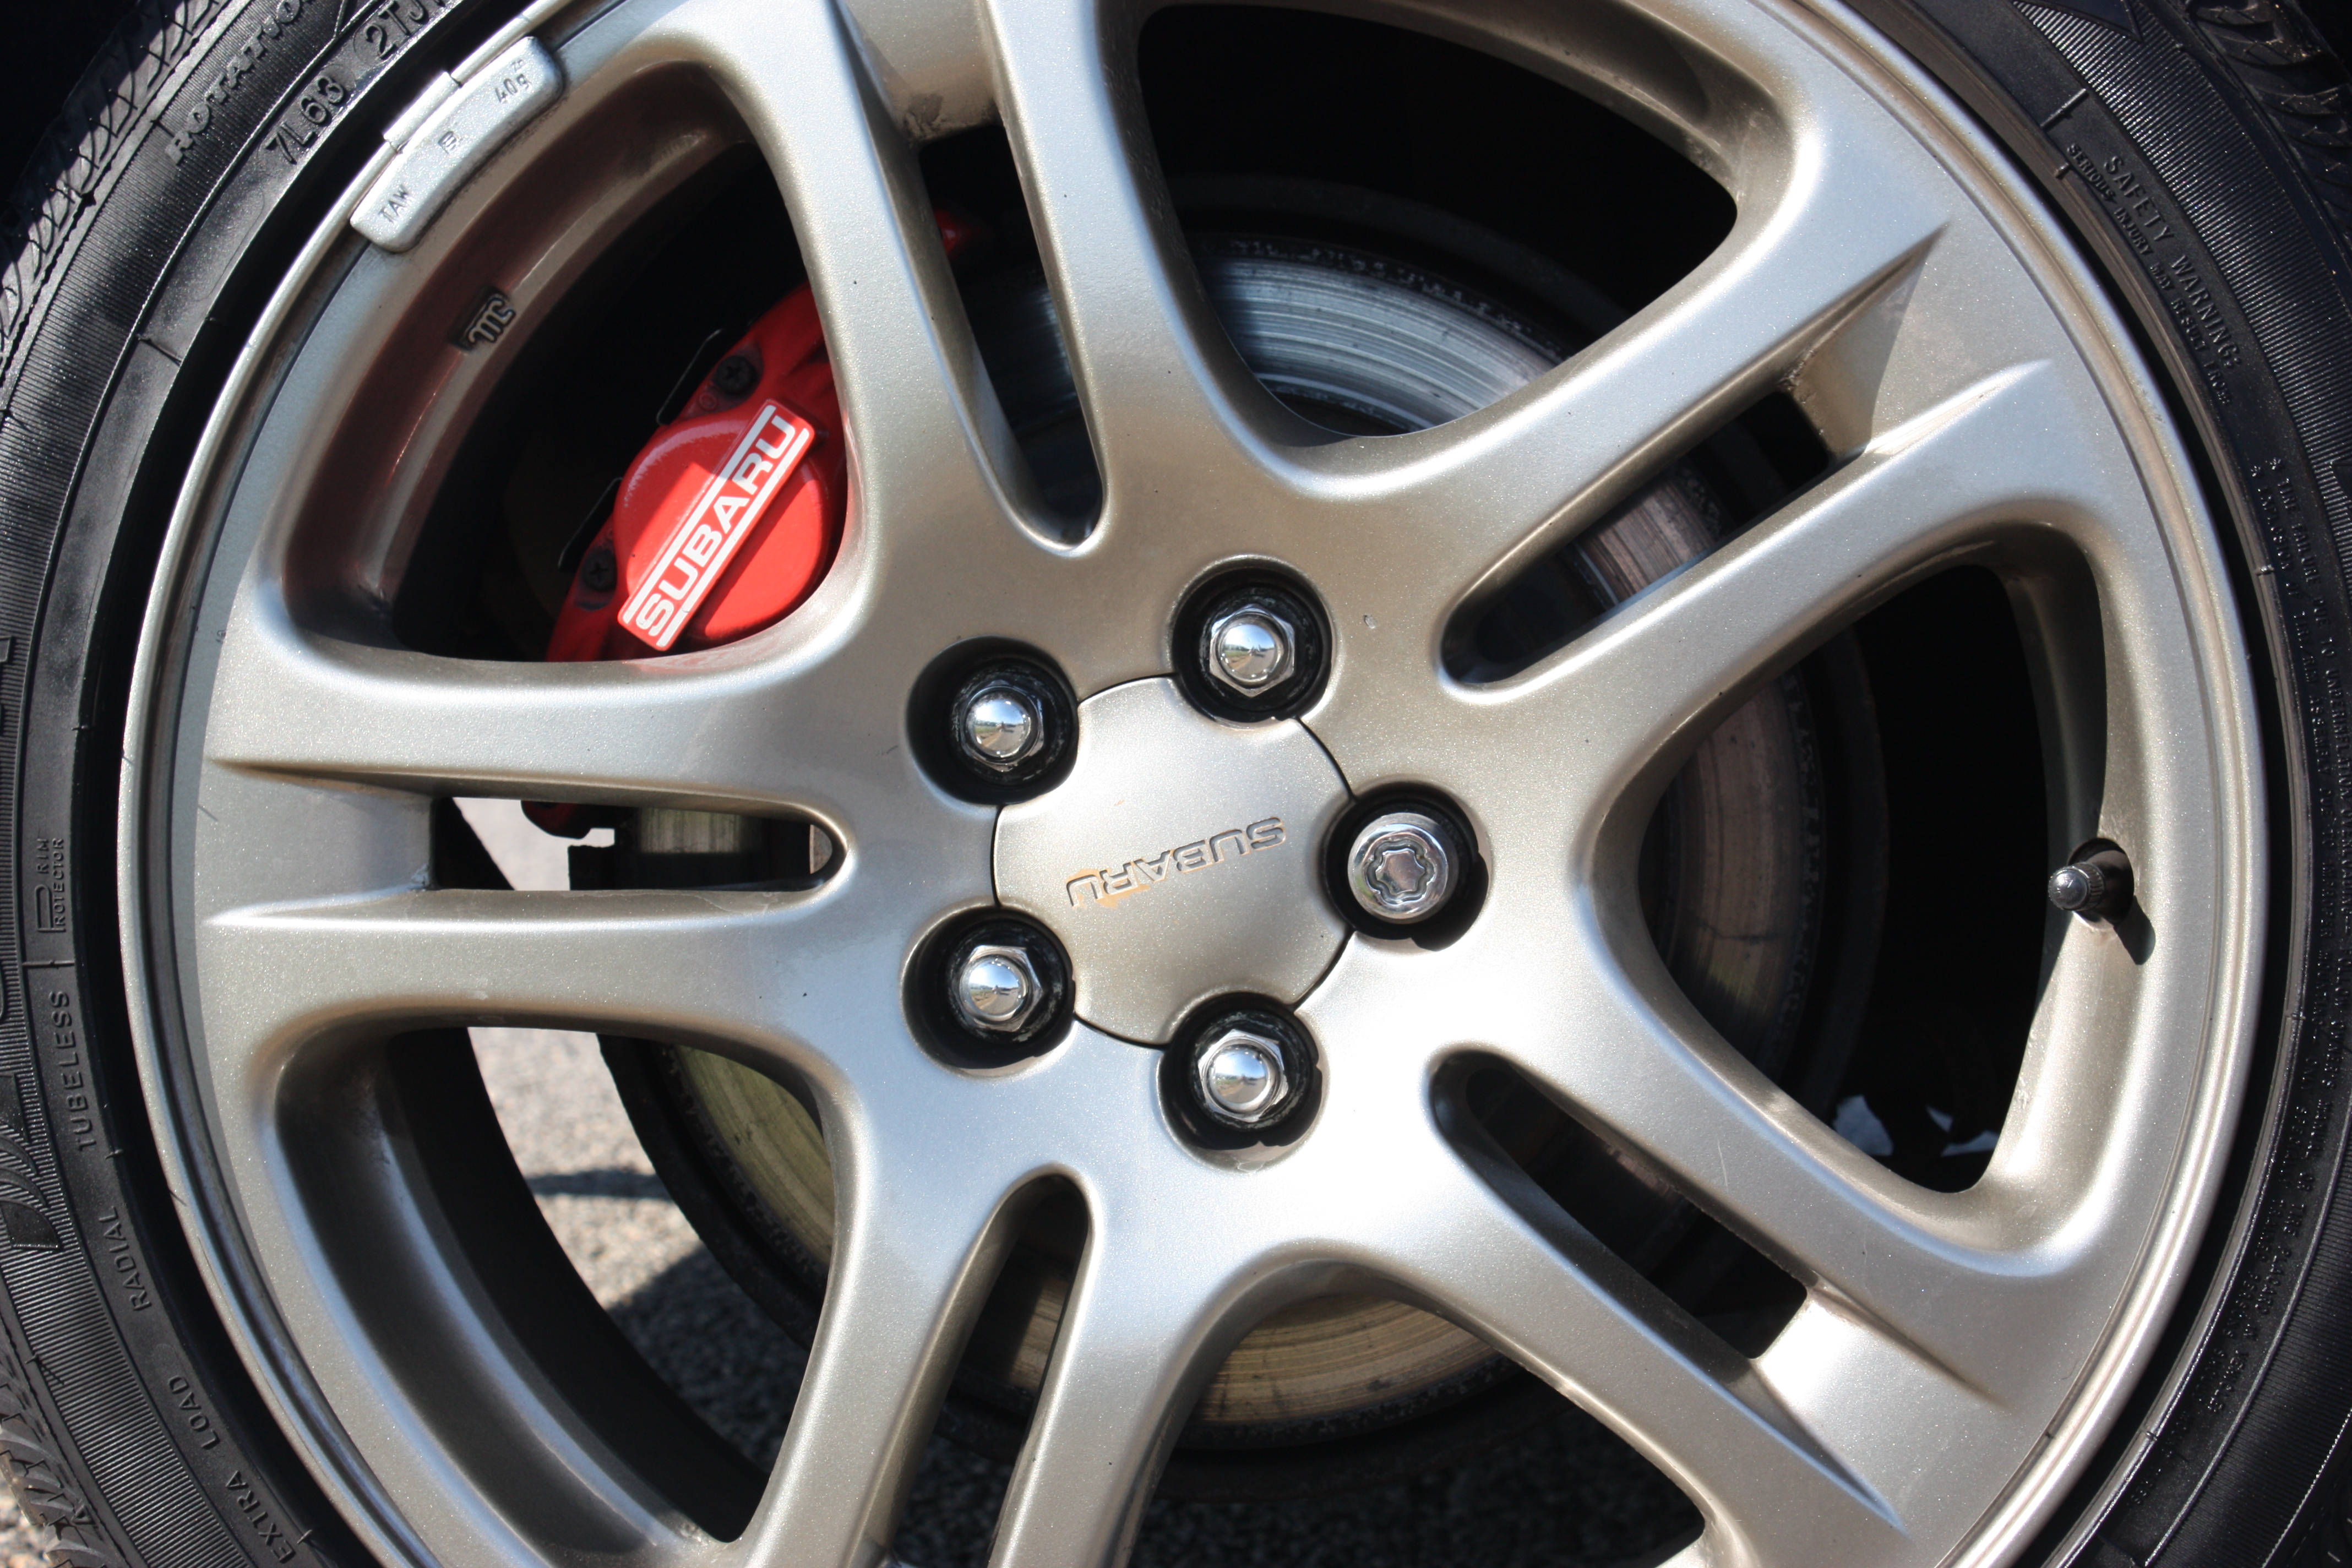 Alloy Wheel Repair & Refurbishment. Our Alloy wheel repair service takes into account a variety of wheel repair processes that can be implemented to return wheels to their former glory or .